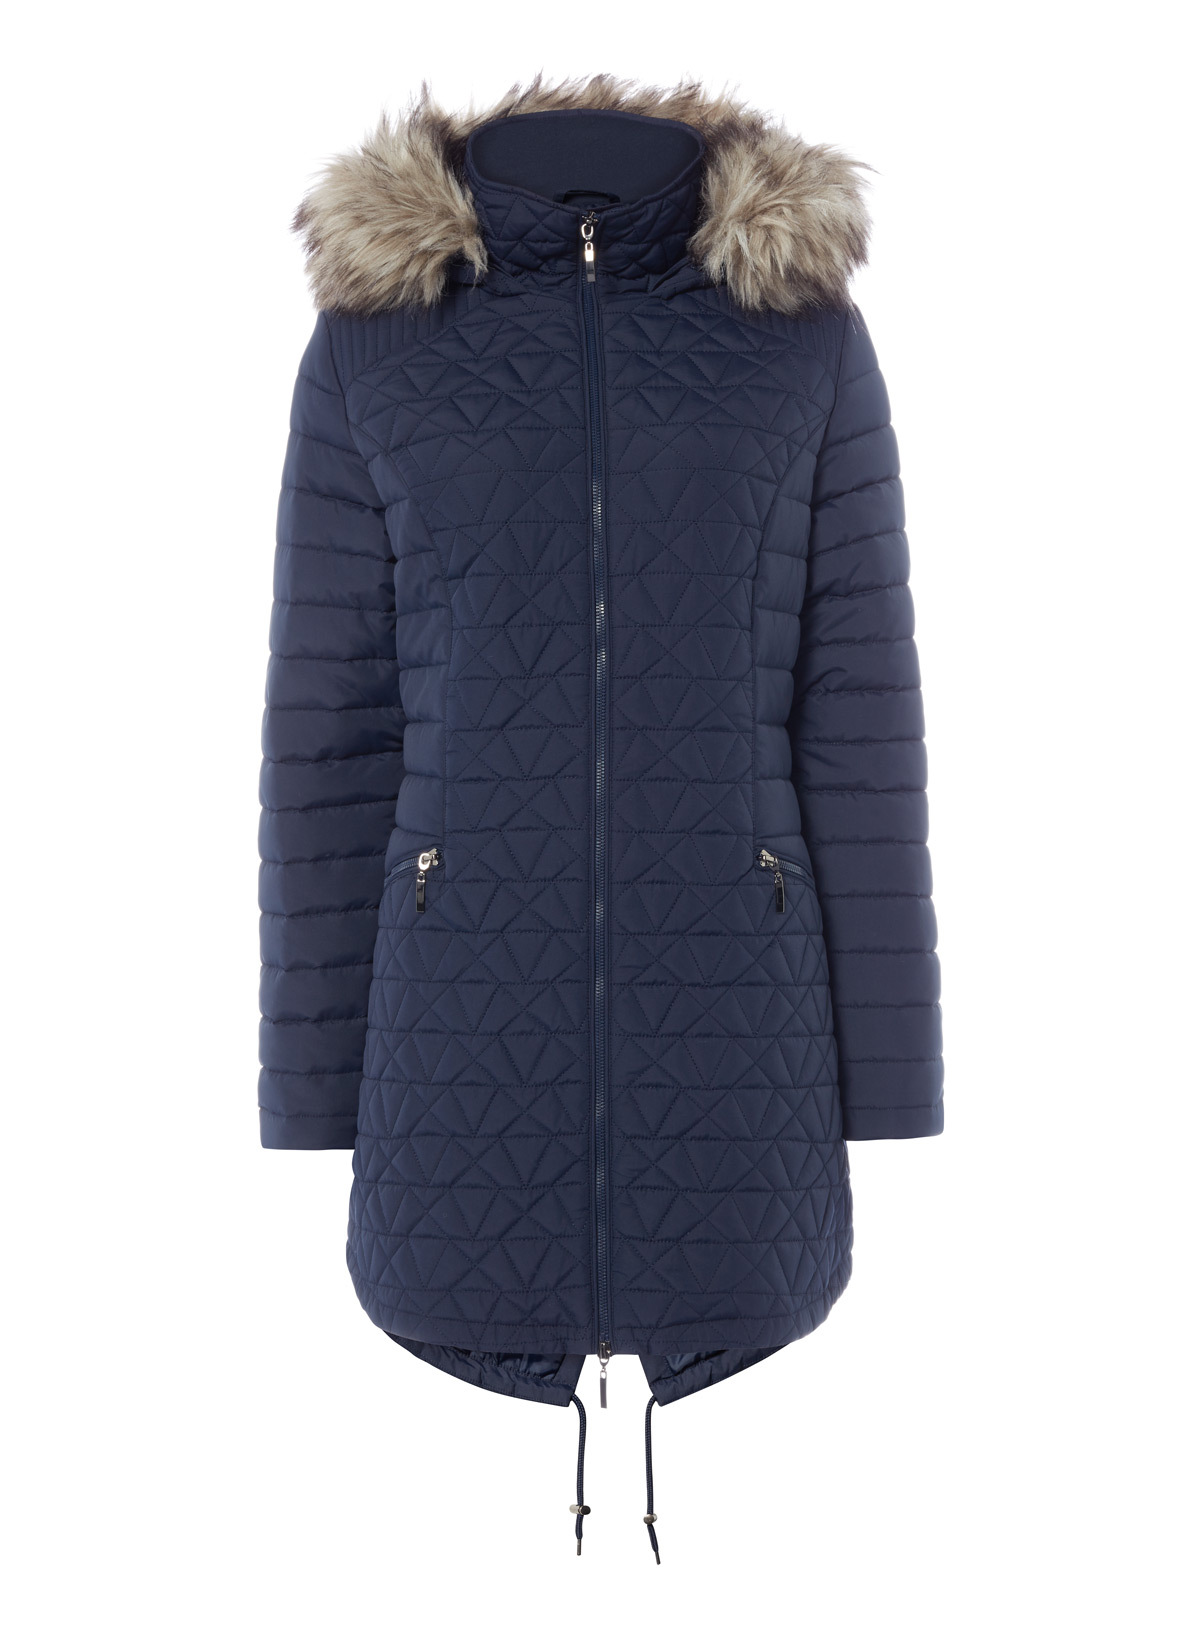 Womens Navy Long Quilted Parka | Tu clothing